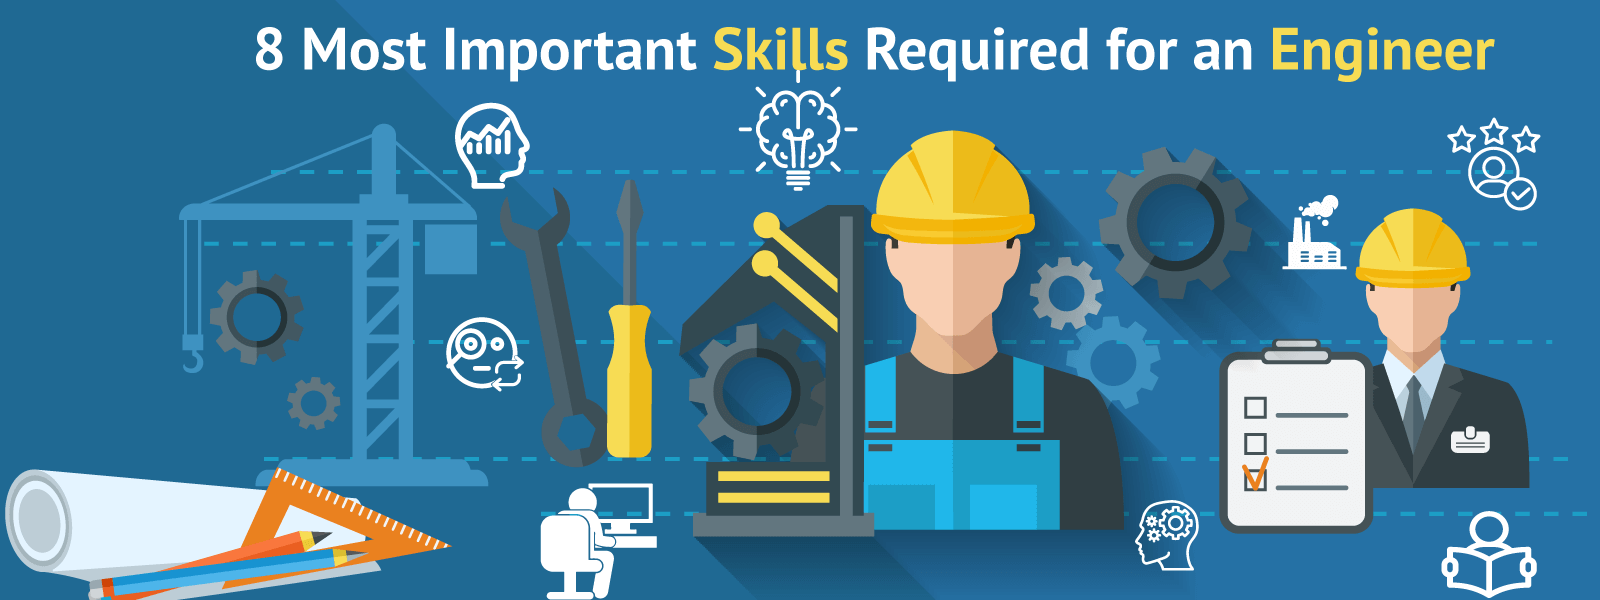 8 most important skills required for an engineer